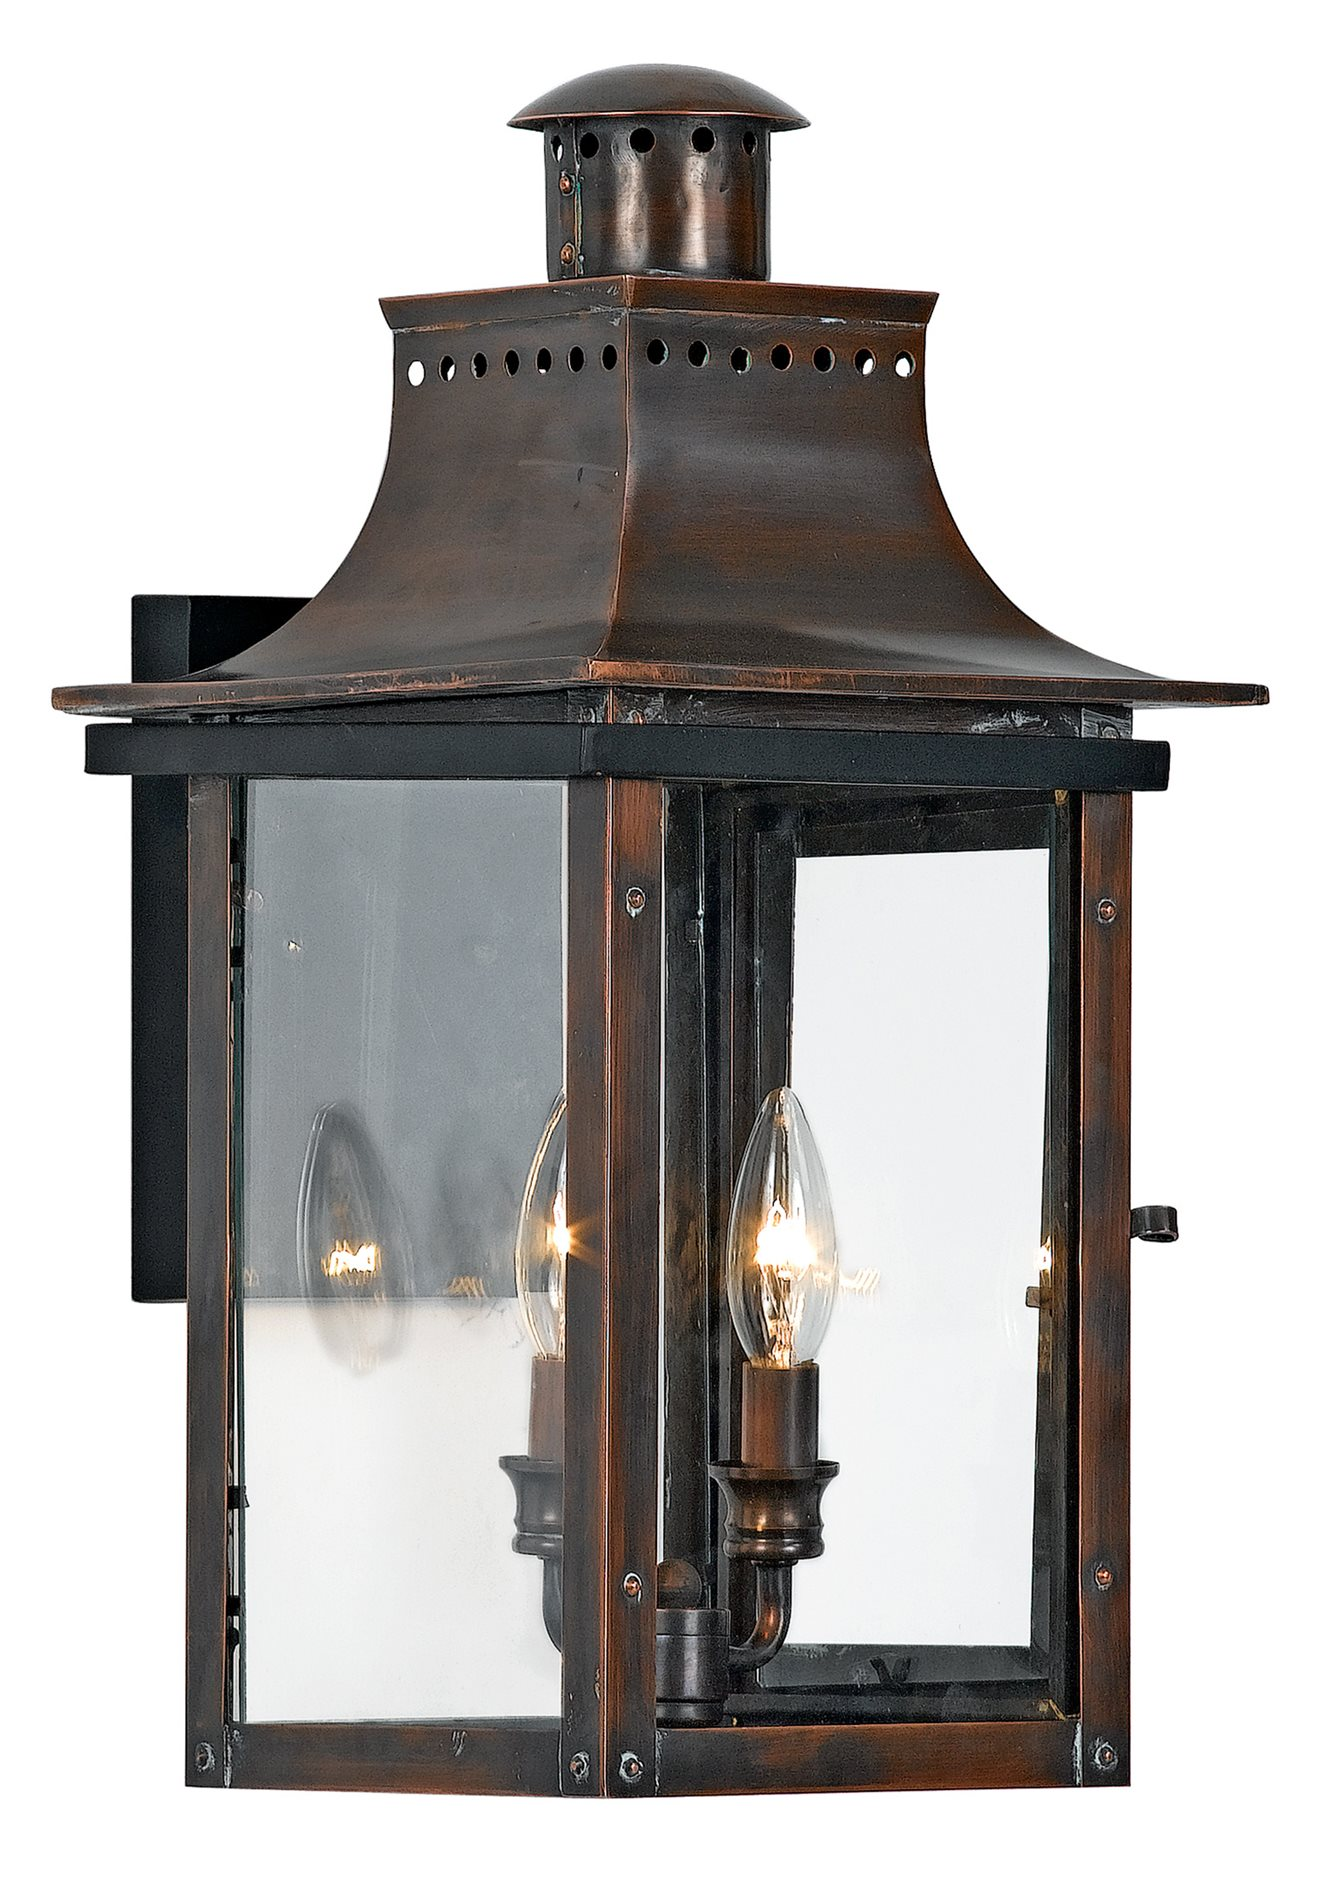 Quoizel cm8410ac chalmers traditional outdoor wall sconce qz cm8410ac for Exterior light sconce